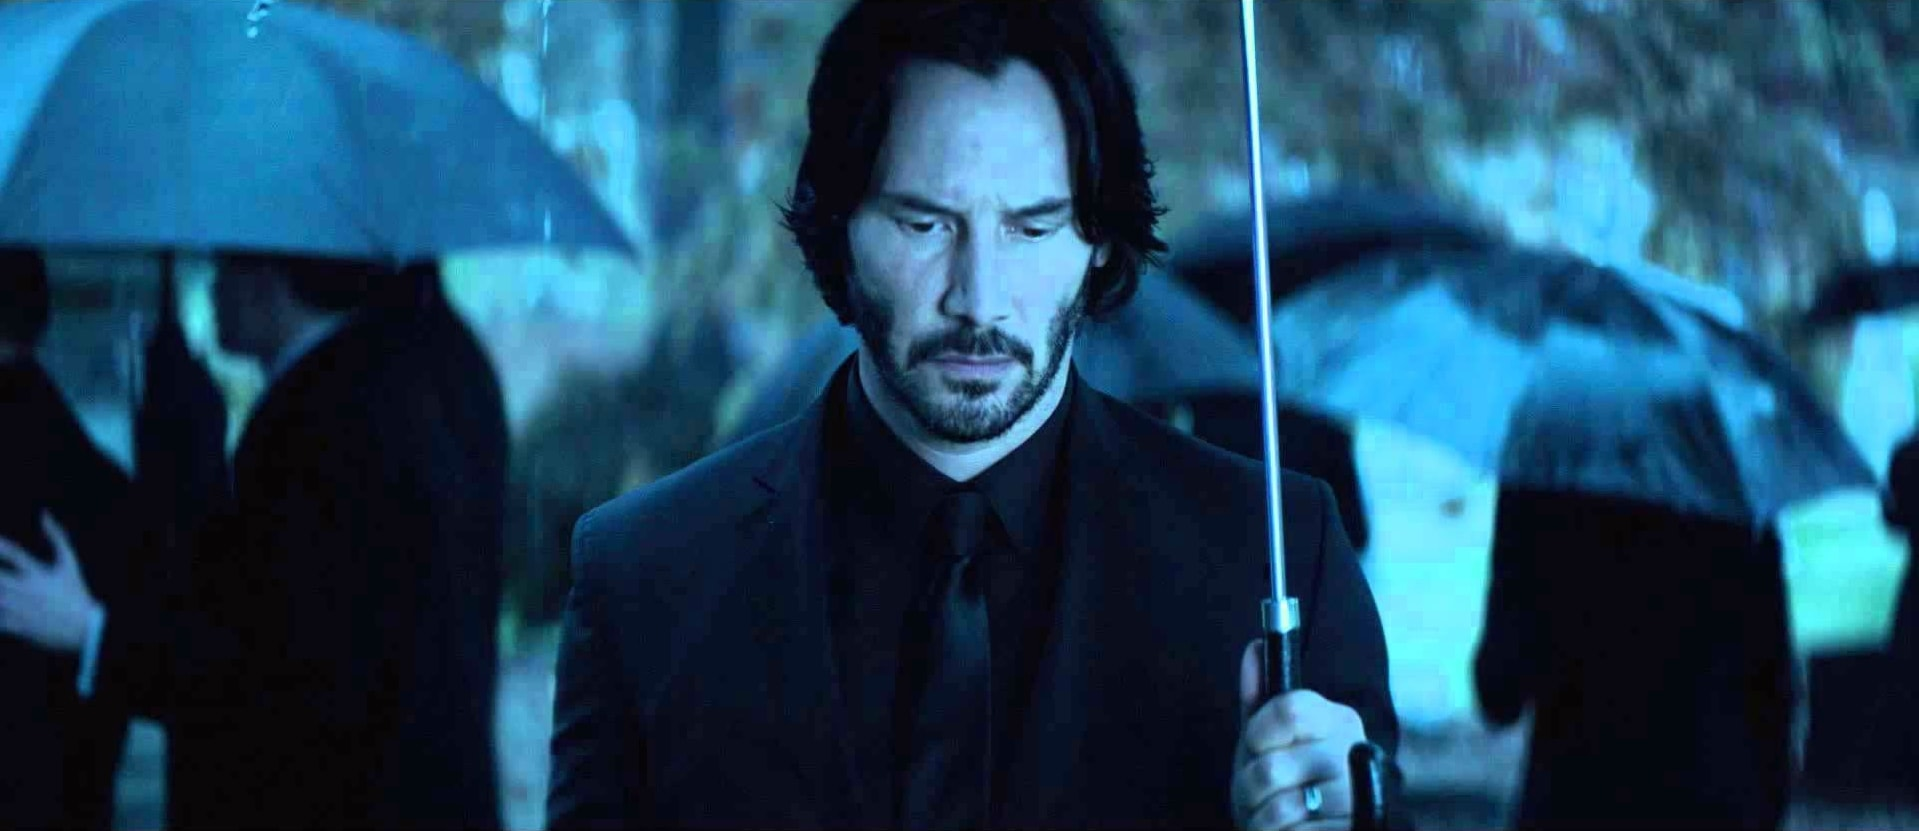 John Wick full hd wallpapers